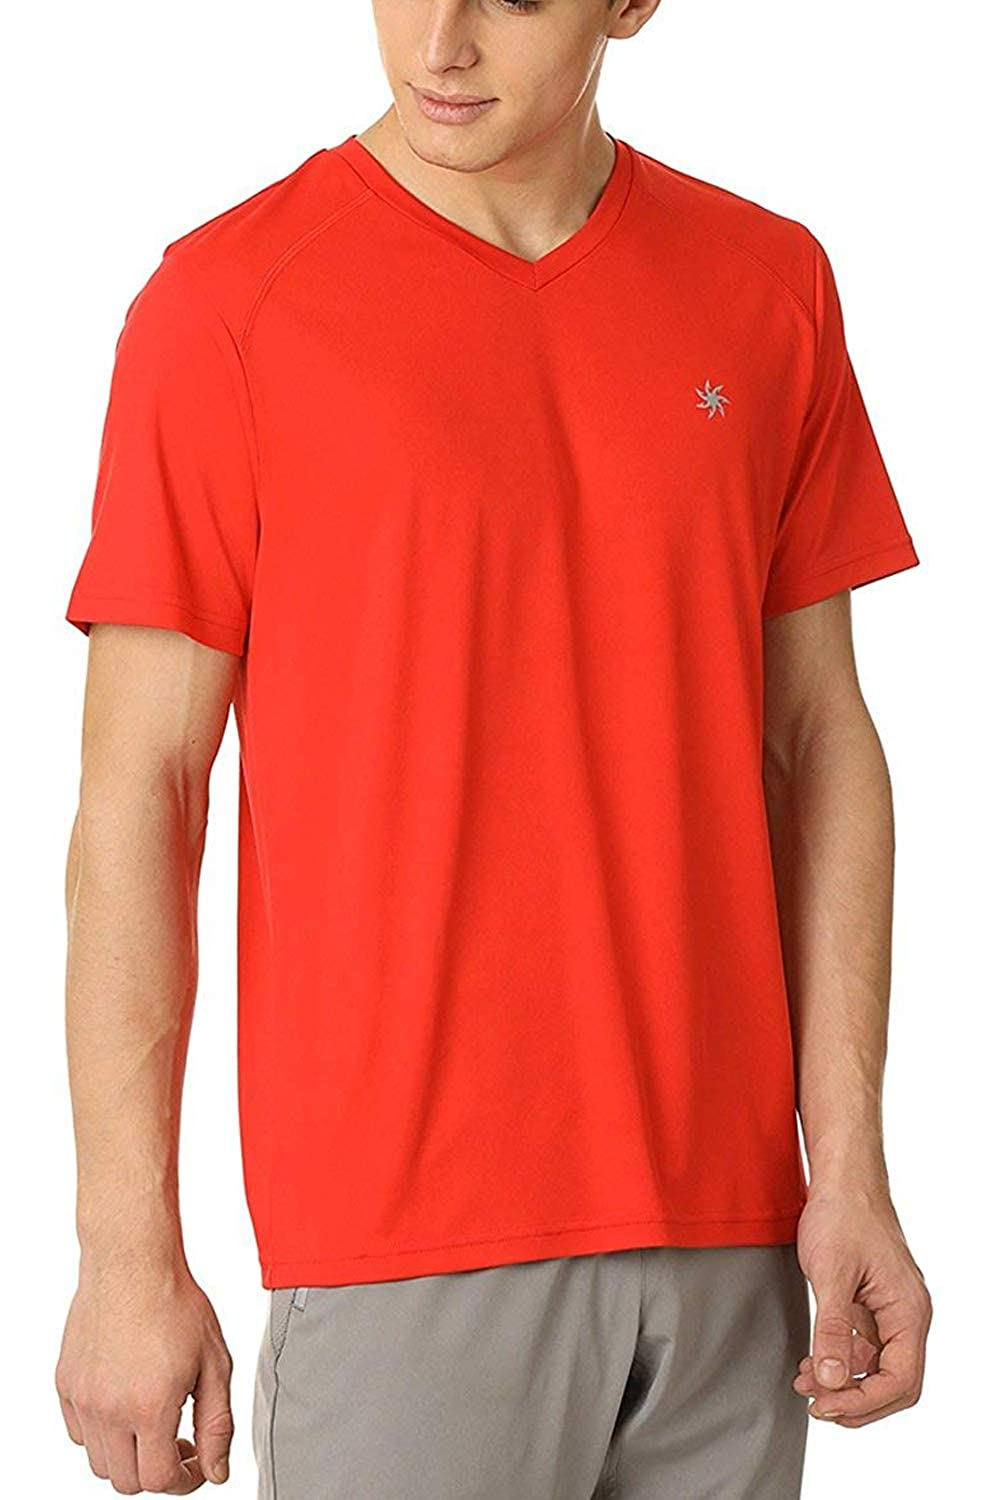 d1ec6e25 Zeven Men's Tshirts | Plain V-Neck Polyester Half Sleeves T Shirt for  Casual Sports Gym Excercise Workout Work (Red): Amazon.in: Clothing &  Accessories